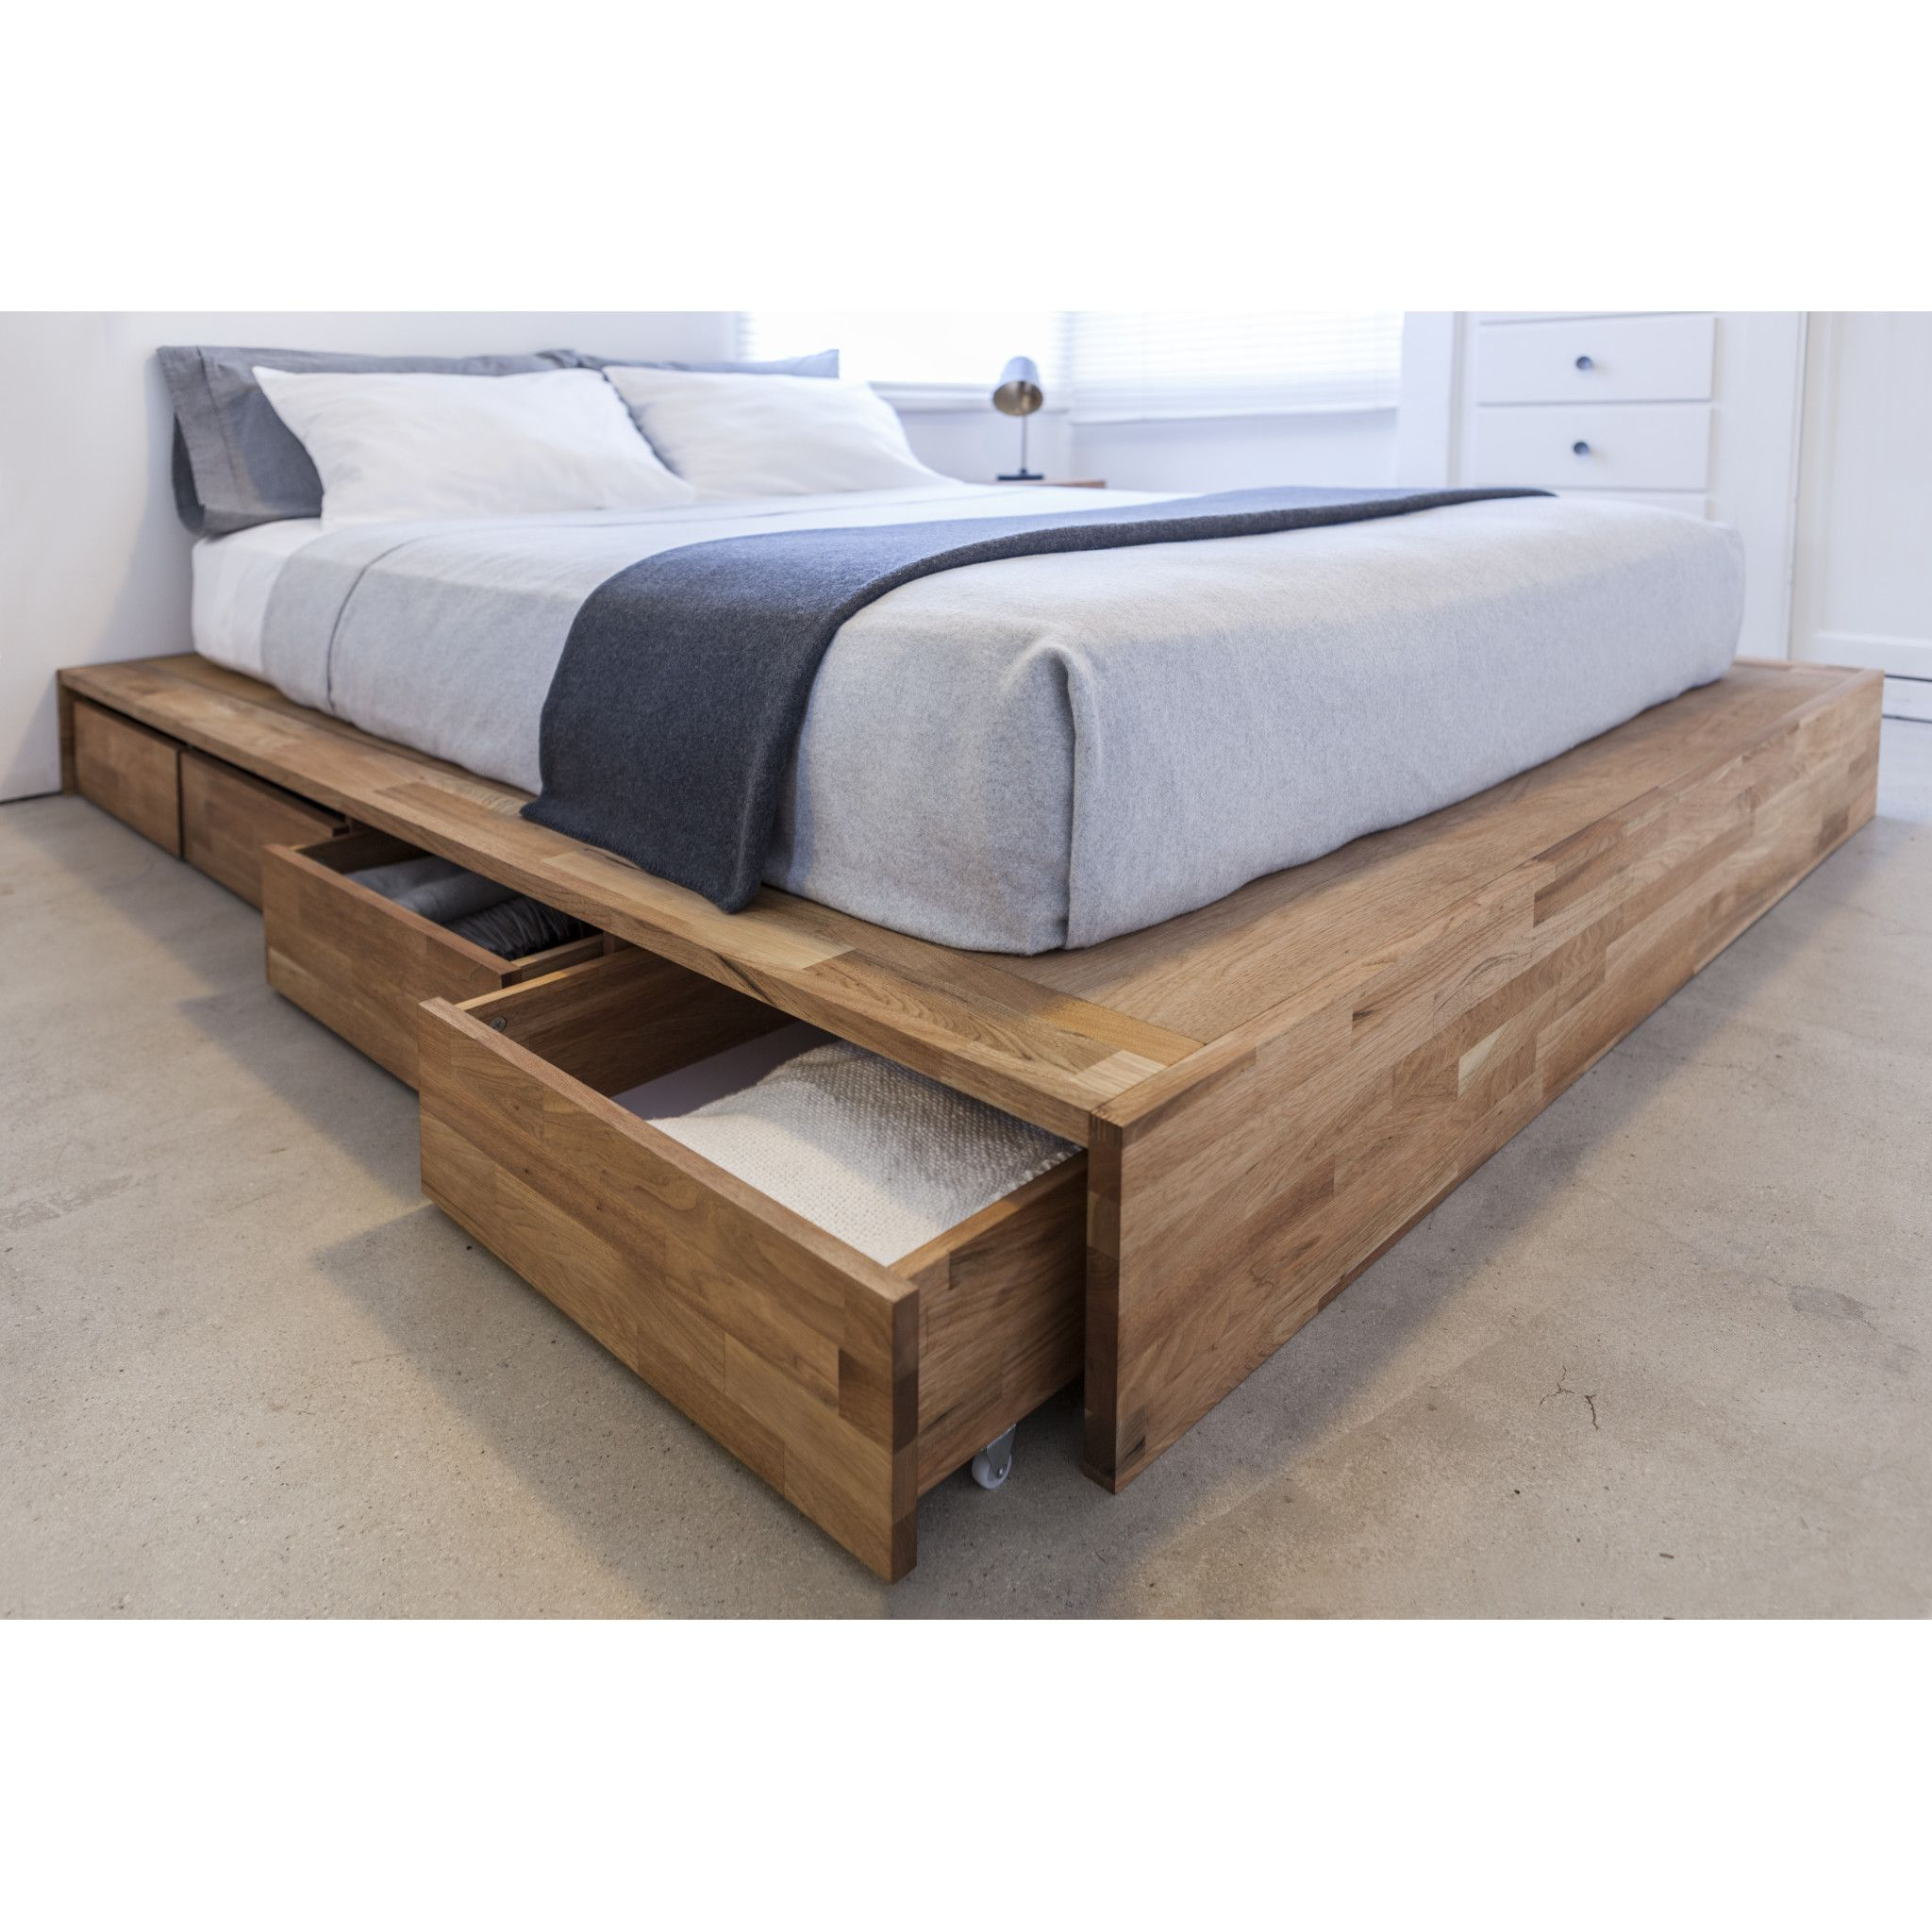 Middendorf Storage Platform Bed Bed Design Diy Platform Bed